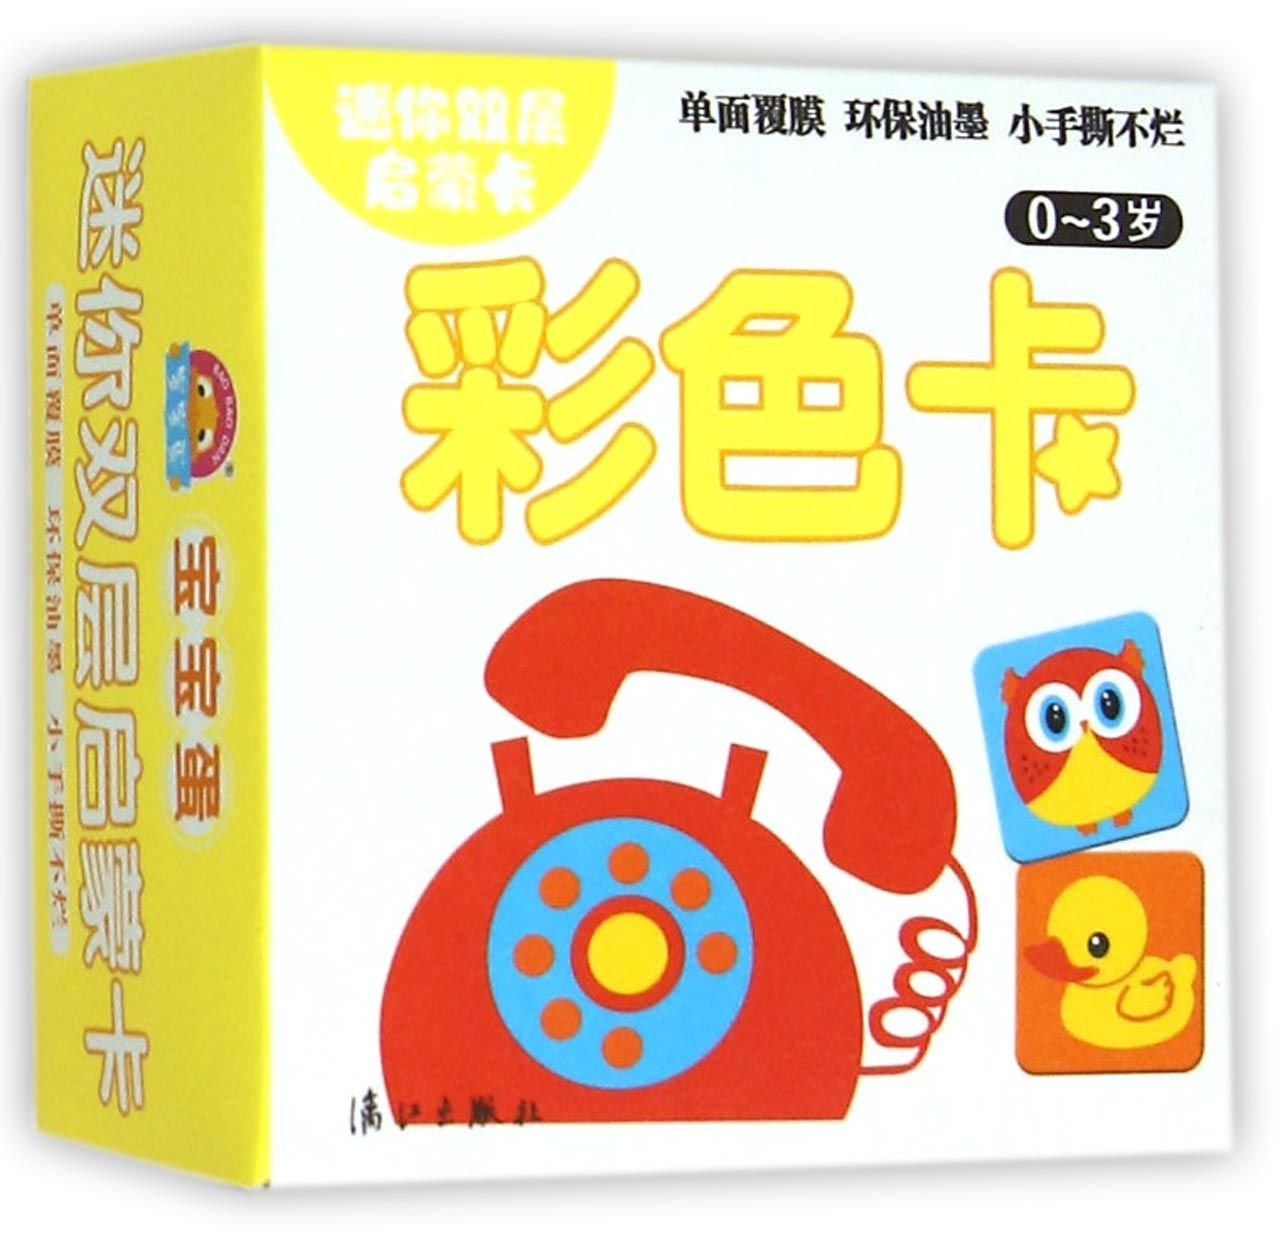 Mini double Enlightenment Card Color Card(Chinese Edition) pdf